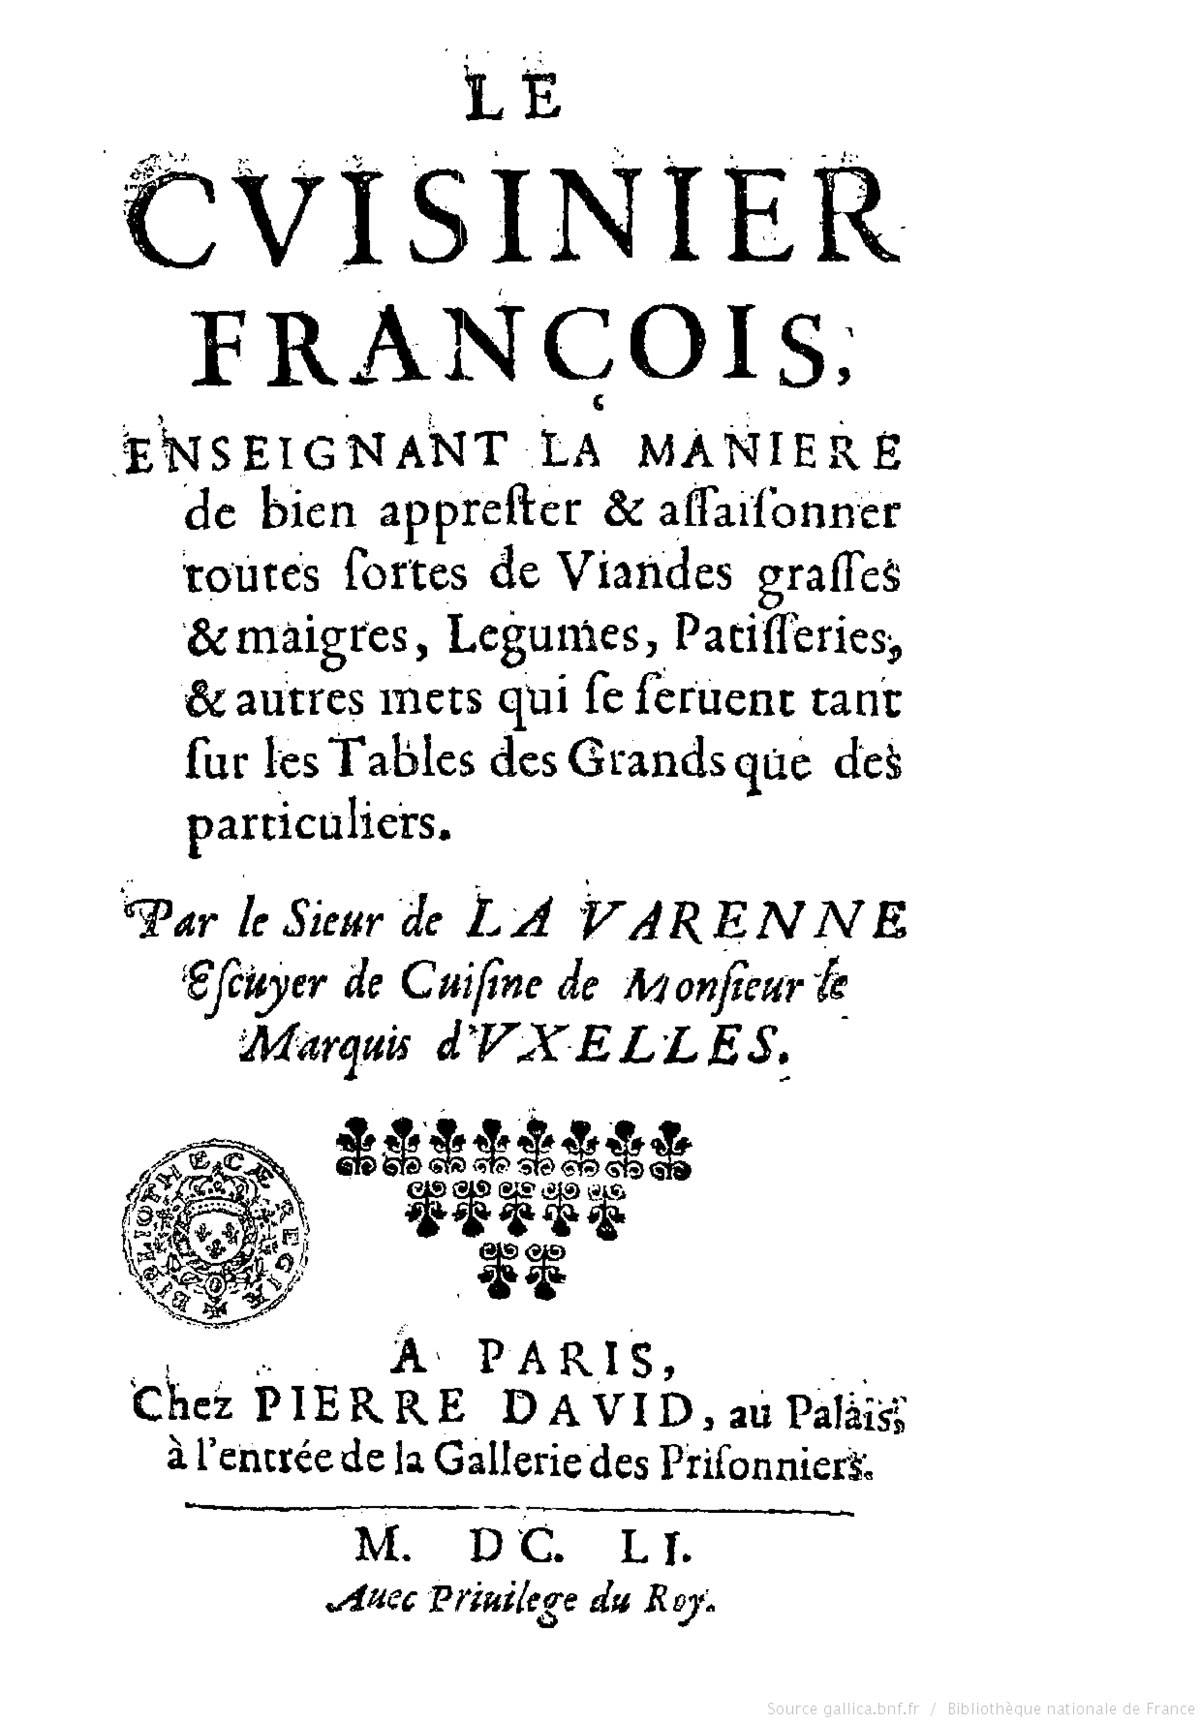 Le cuisinier francois. First page.